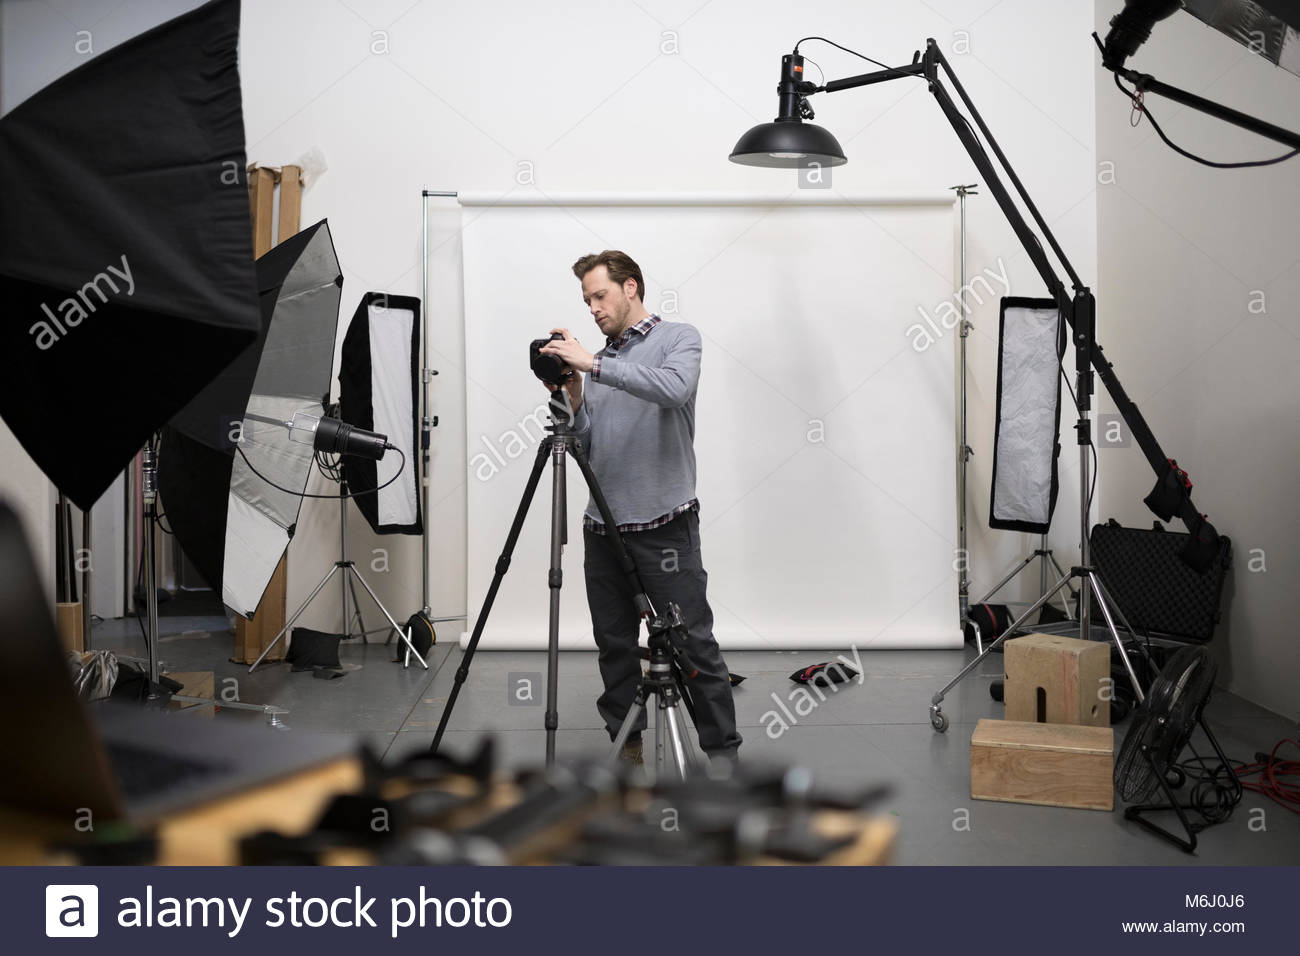 Male photographer preparing digital camera equipment for photo shoot in studio - Stock Image